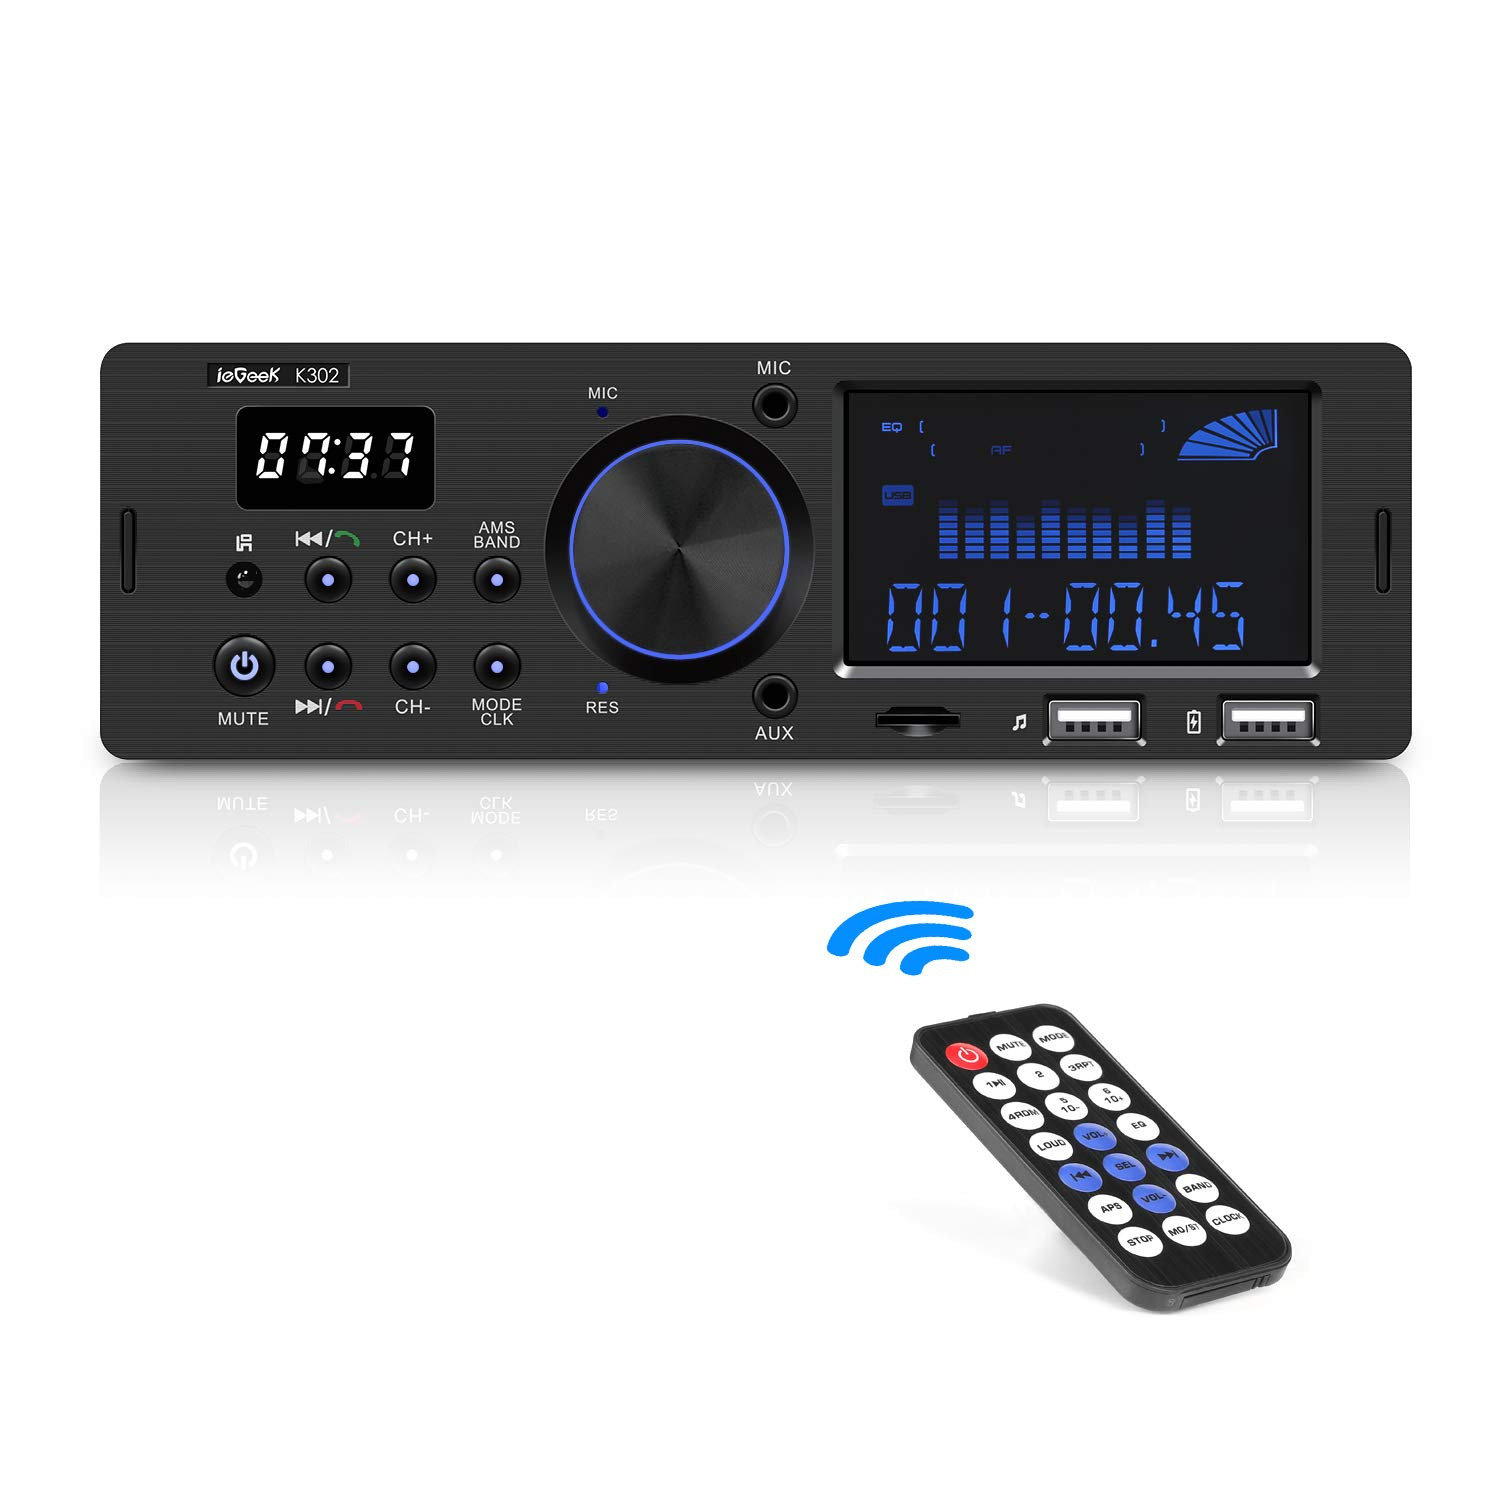 ieGeek Autoradio Bluetooth Main Libre, Double Affichage LCD avec Horloge, Supporte FM/AM/RDS Stéréo Radio de Voiture (30 Stations de Mémoire), Compatible avec USB/AUX in / MP3 / FLAC/SD product image